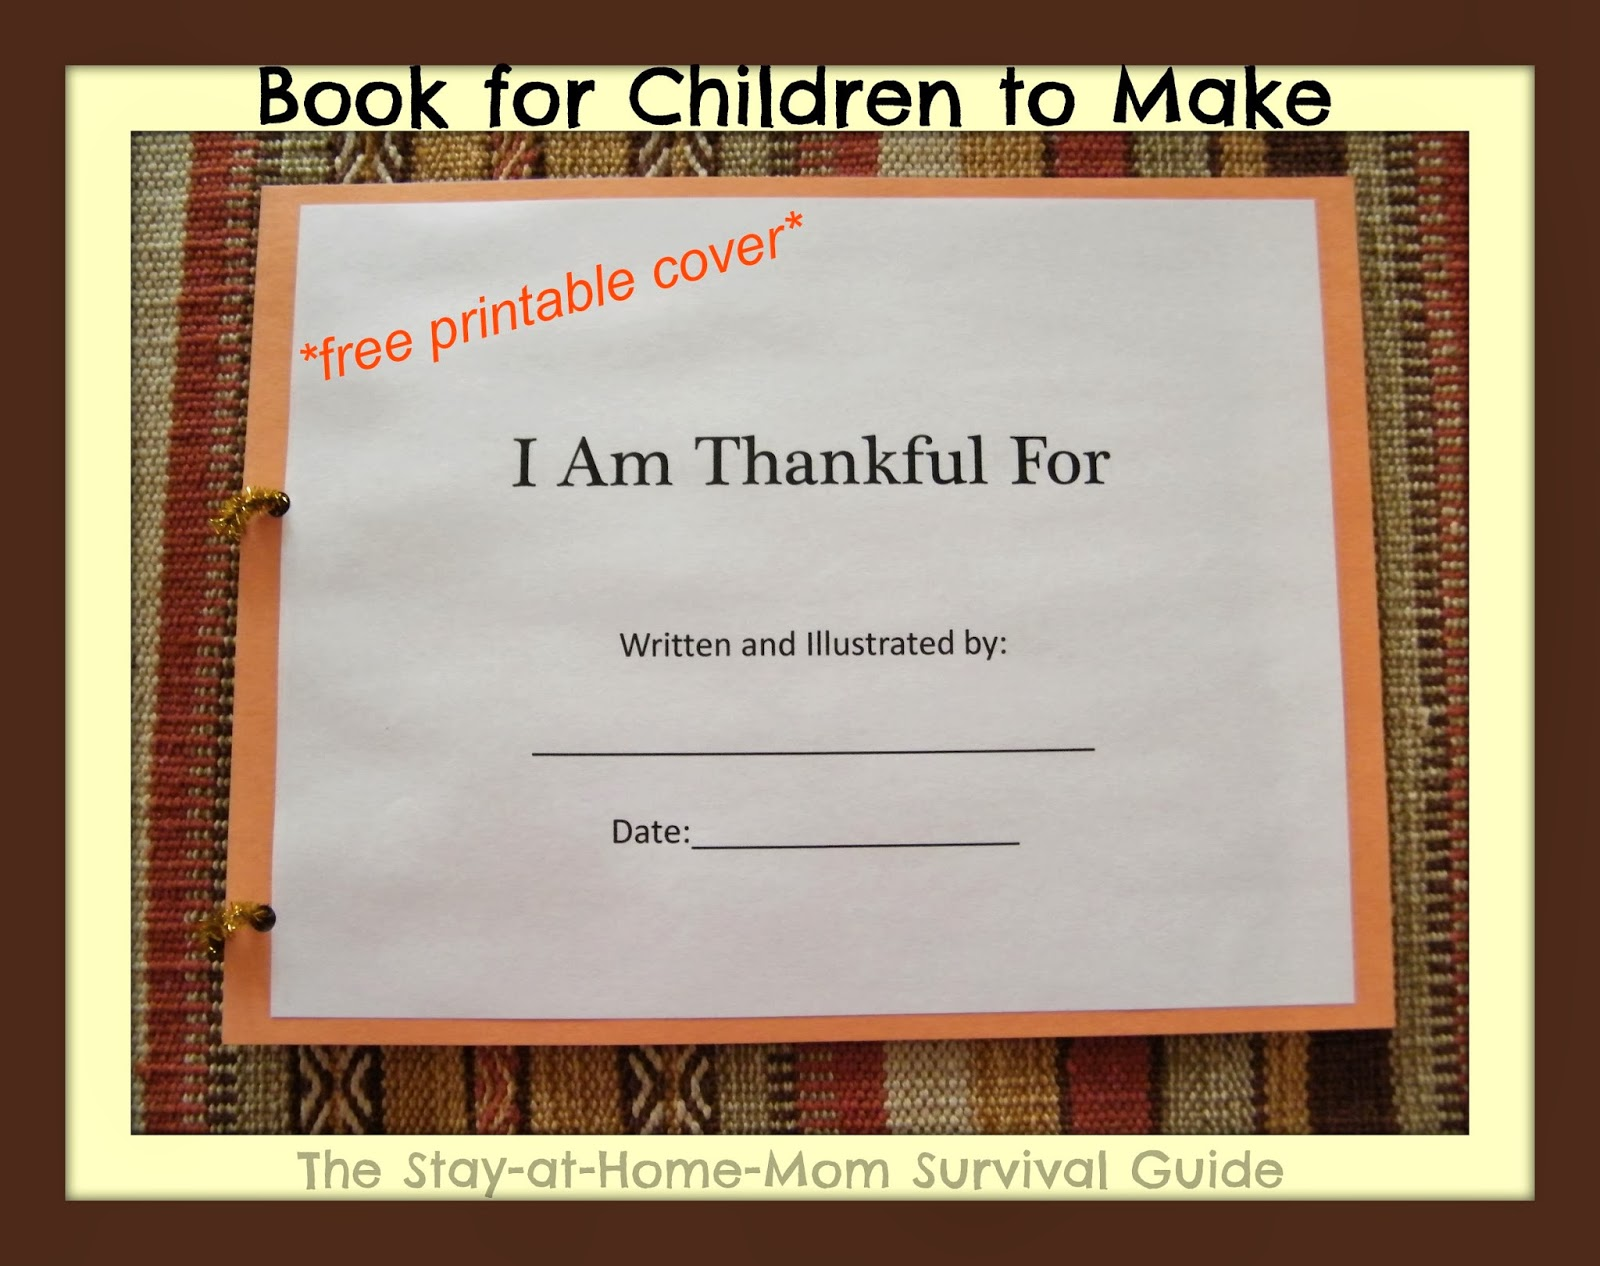 I Am Thankful Book For Children to Make